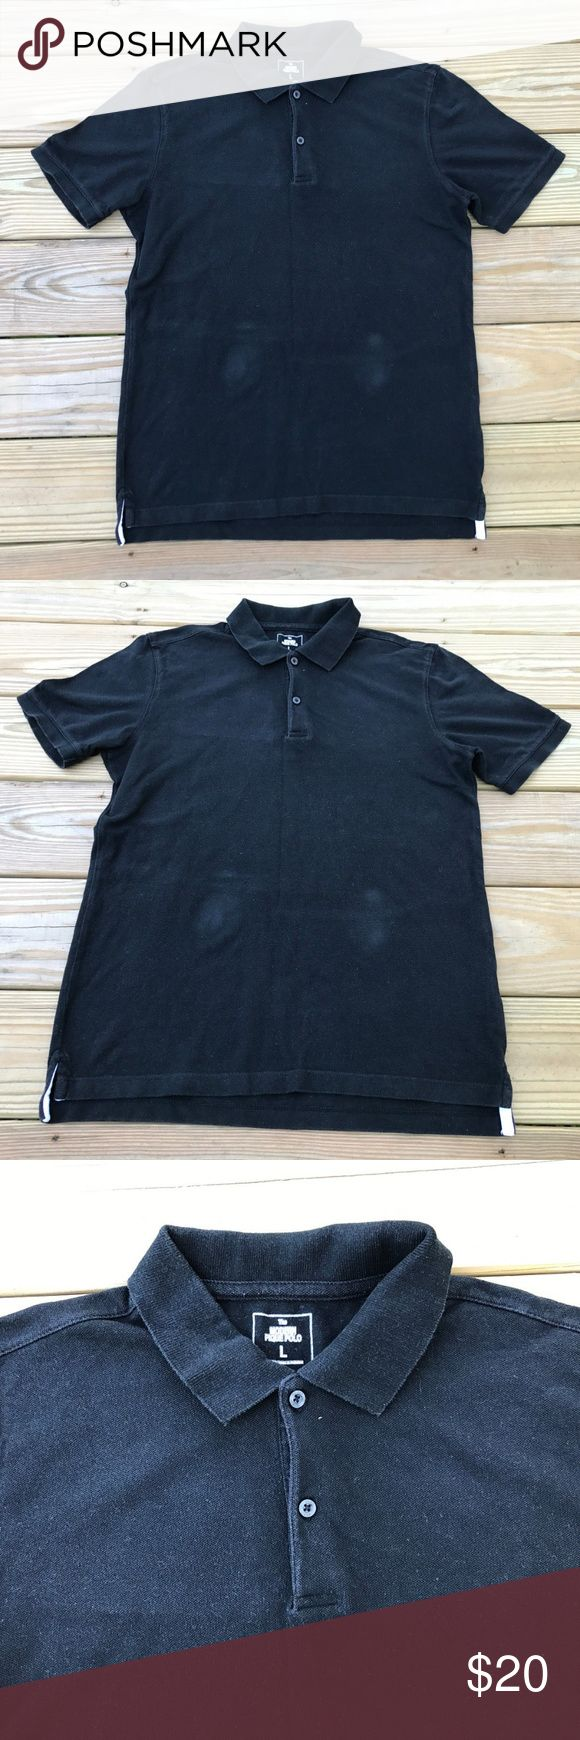 Gap Mens Polo T shirt The Modern Pique Black Polo Pre-owned - Used - In very Good Condition, Please see the photos for condition and read description for exact size.  Gap Men's Polo T shirt The Modern Pique Polo Shirt Black Polo T shirt Size L POLO  Brand: Gap  Color: Black  Size: L  Measurement  Length: 27 inches armpit to Armpit: 20 inches GAP Shirts Polos